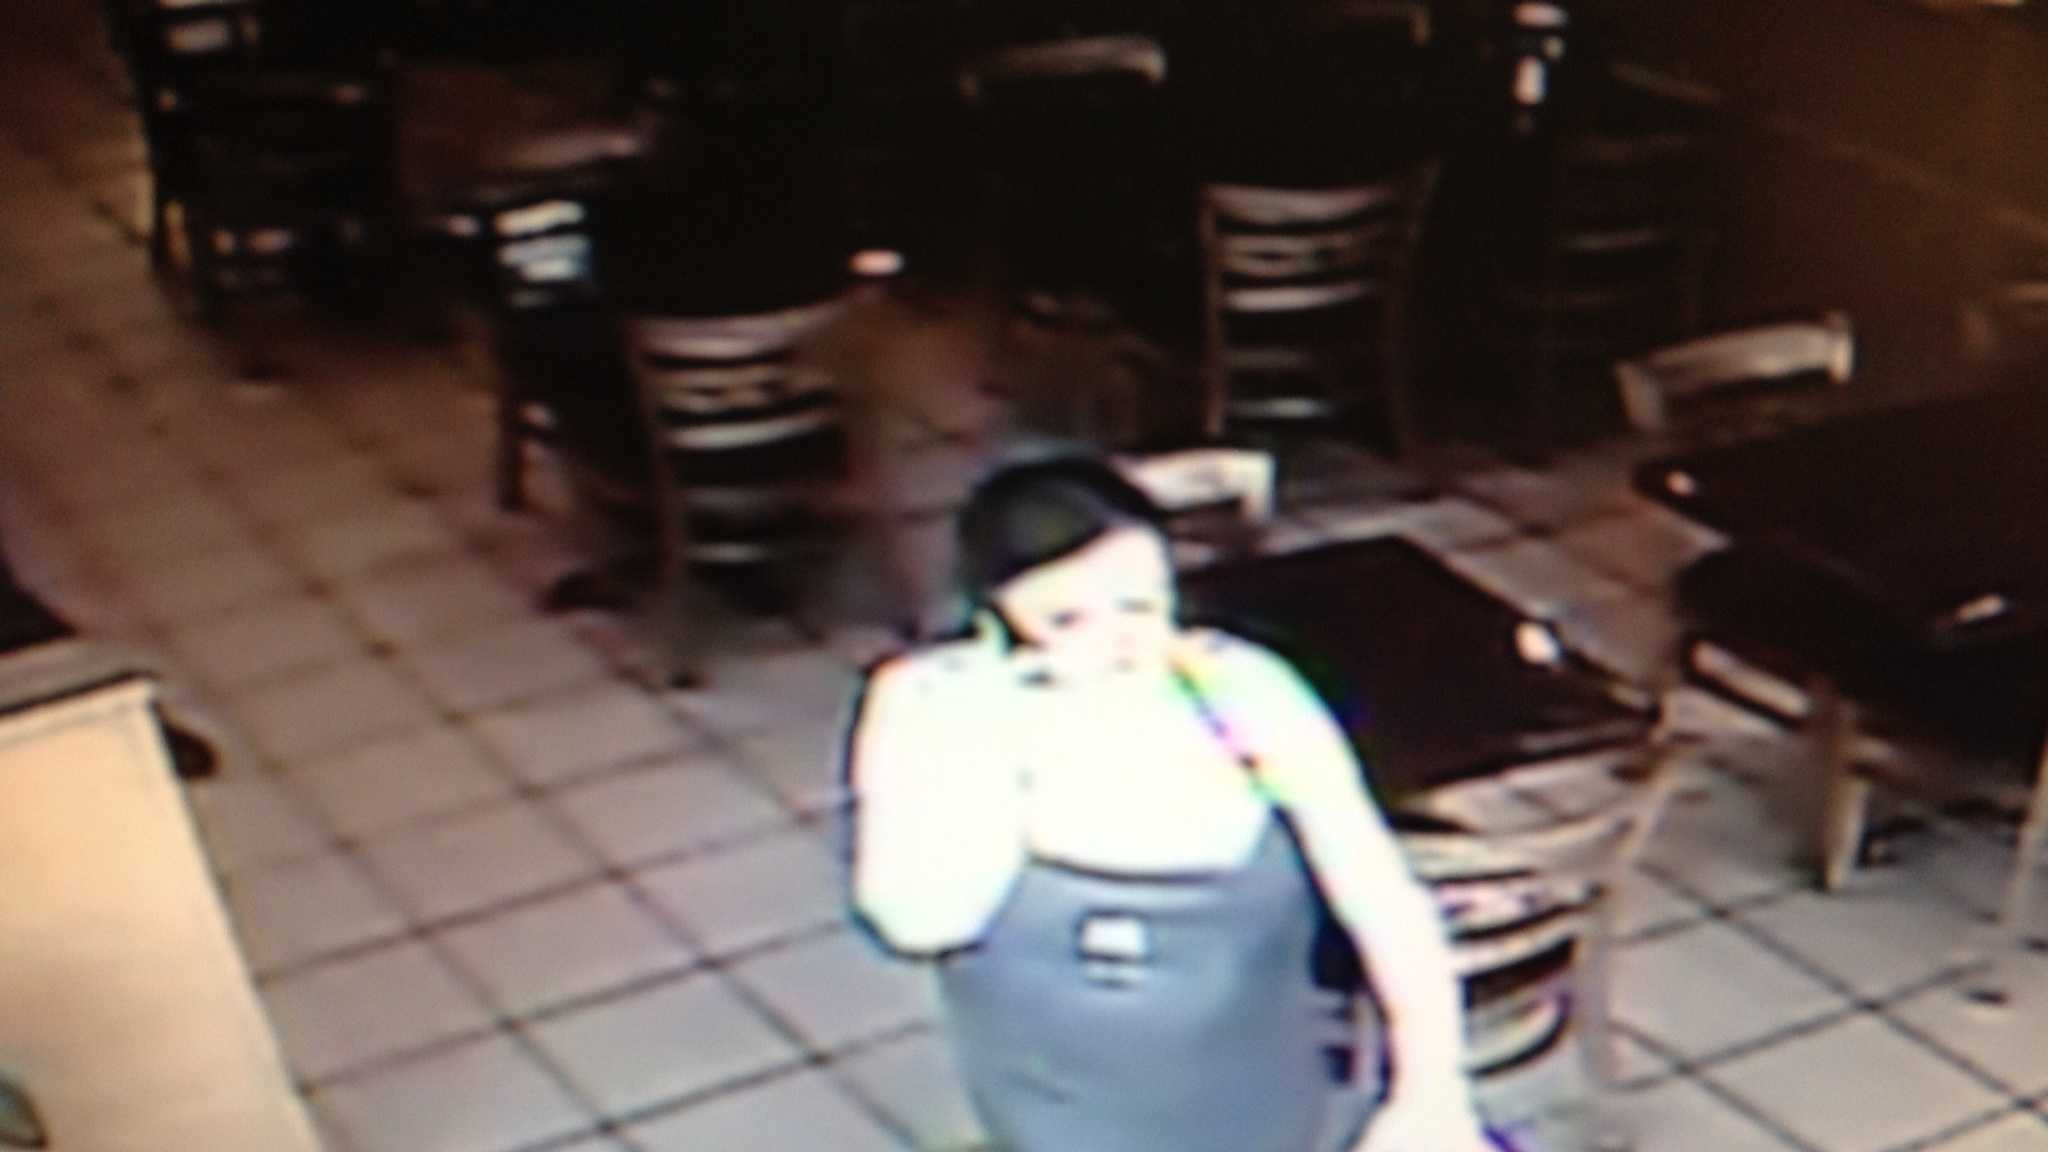 Horry County police seeking help in identifying this woman in connection with the case of the newborn found in the dumpster Thursday.